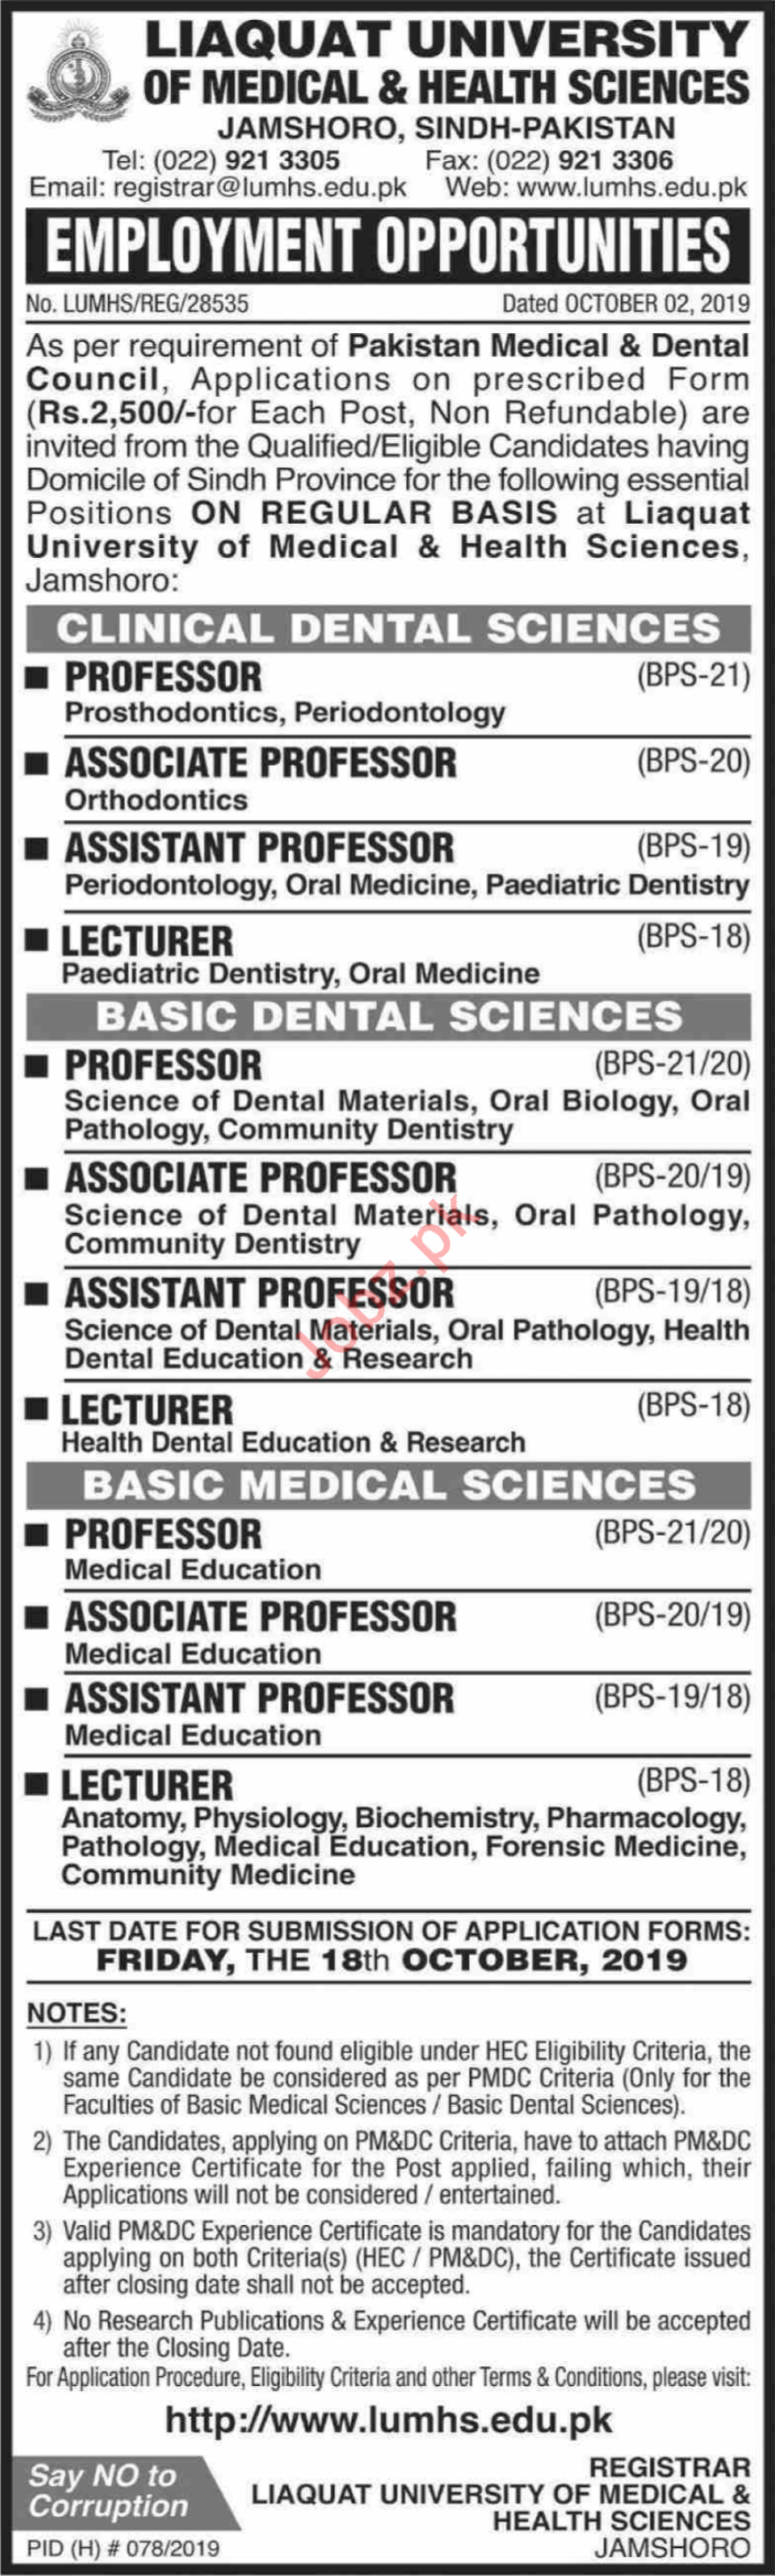 Liaquat University of Medical & Health Sciences LUMHS Jobs